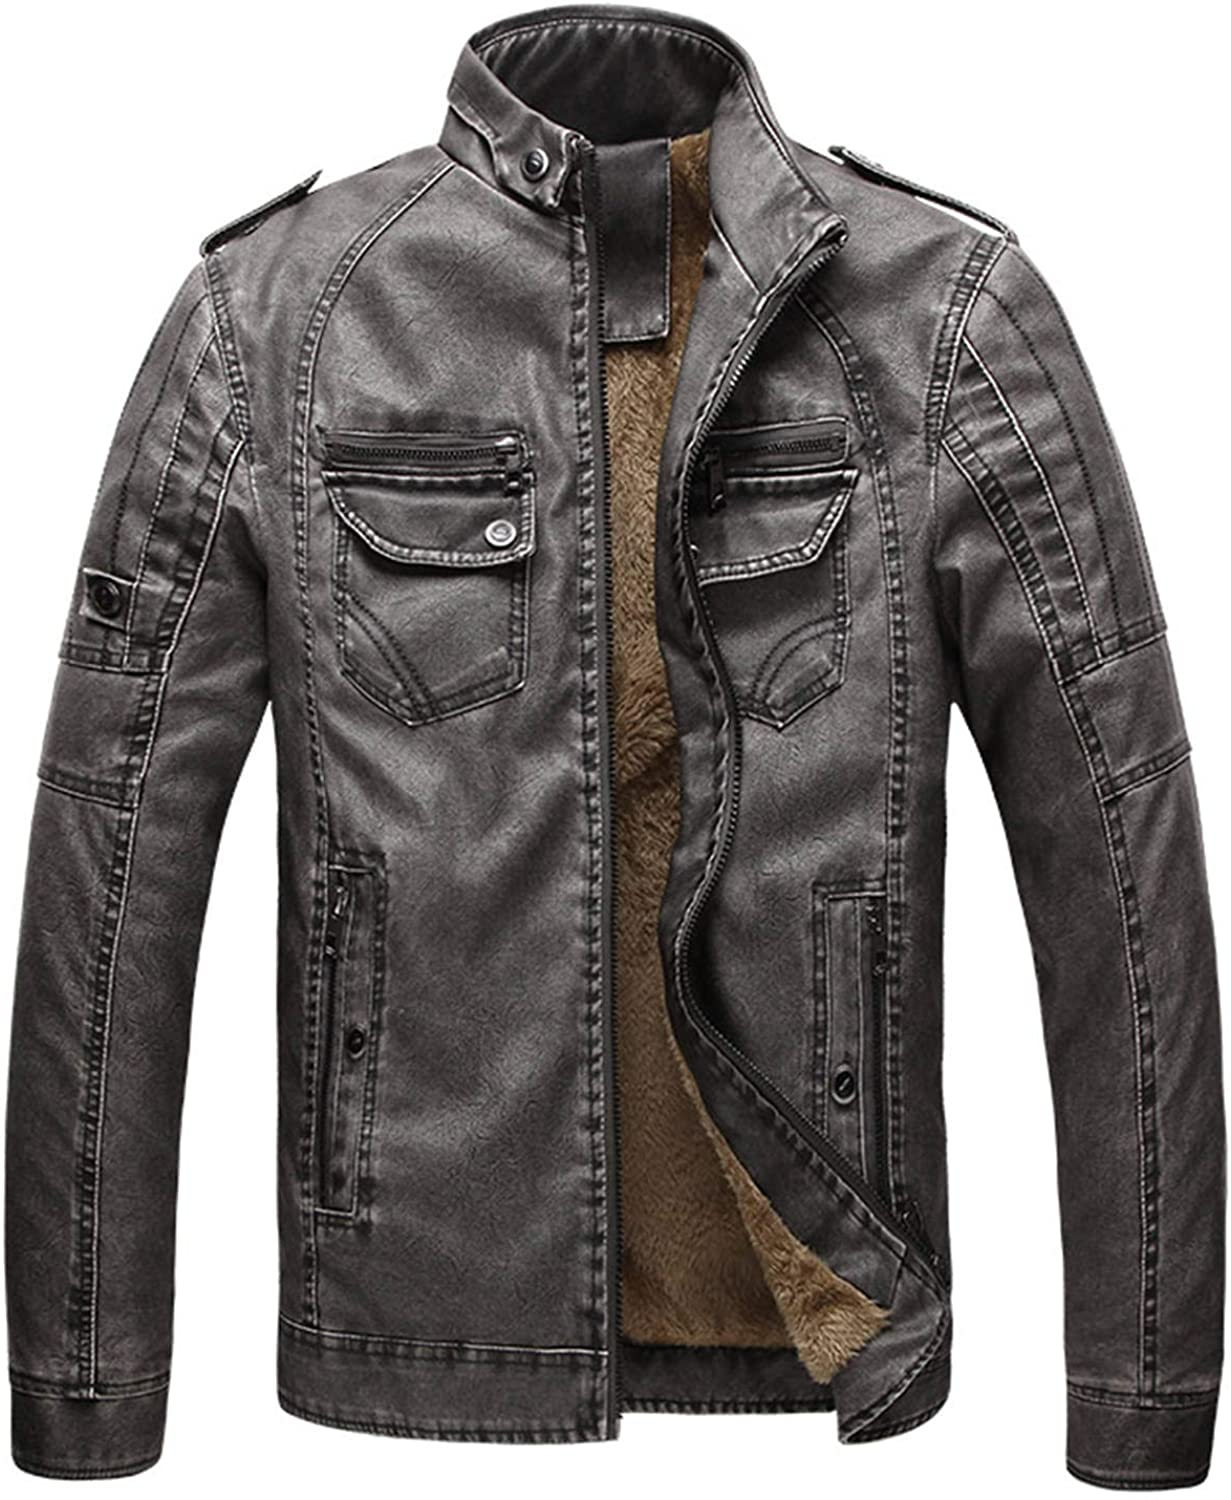 Soluo Men's Stand Collar Fleece Lined Bomber Faux Leather Jacket Outwear Coat (Gray,X-Large)